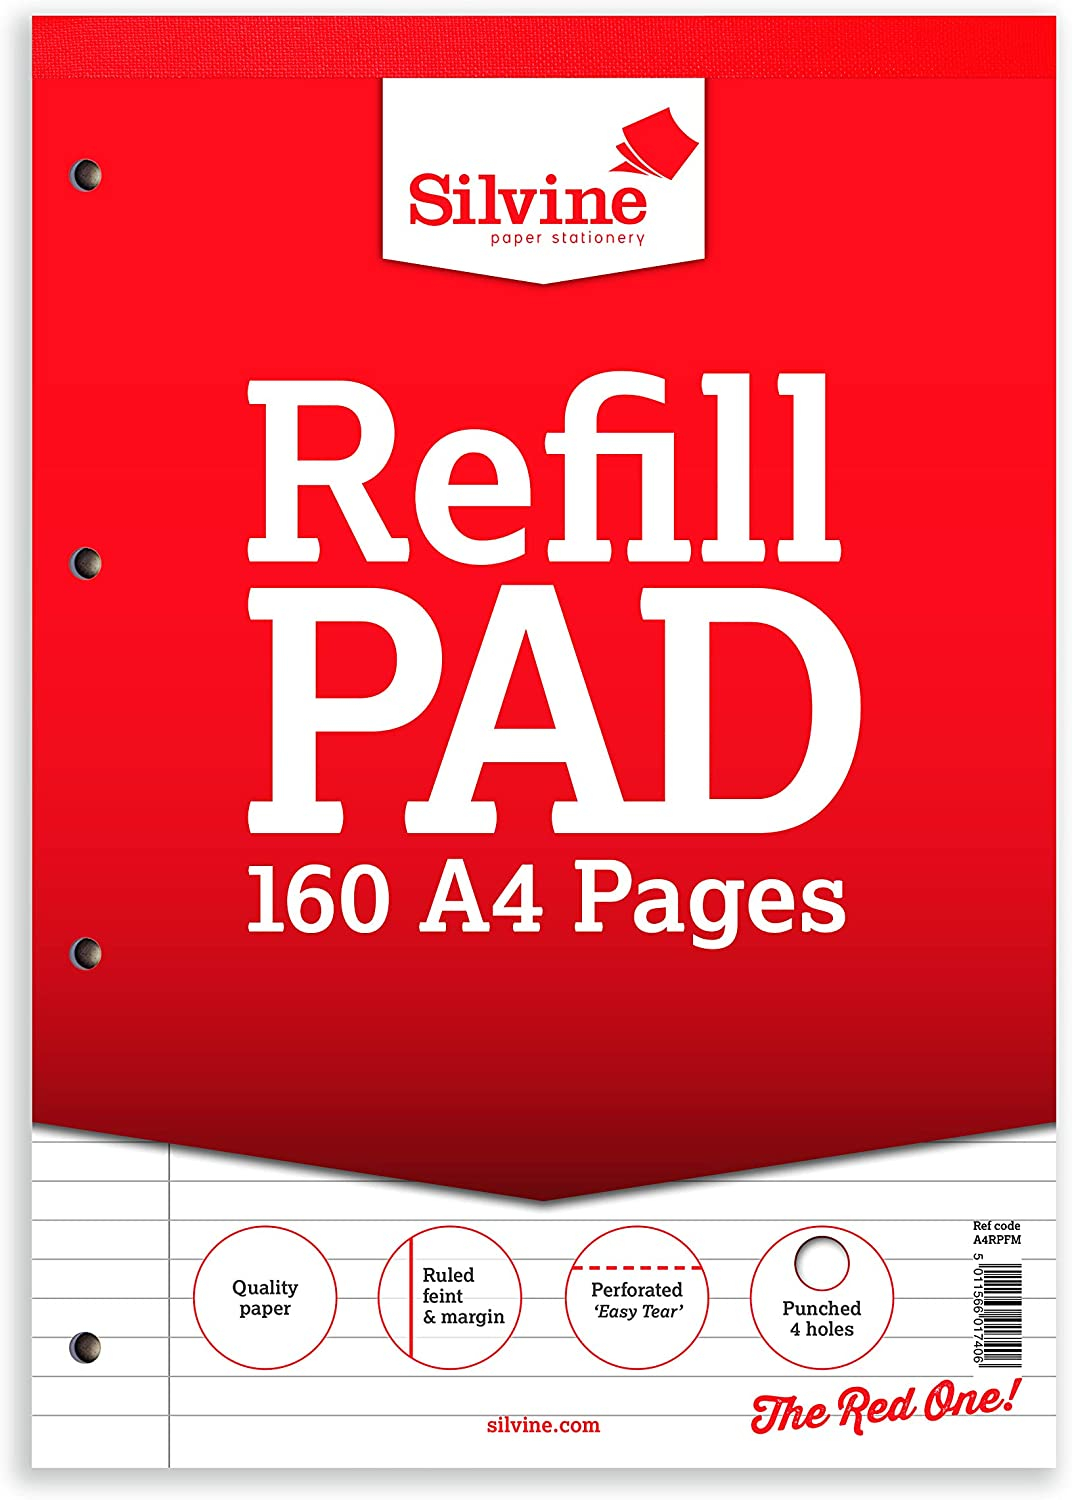 A4 Refill Pad 160 Pages Perforated Easy Tear Punched 4 holes Quality Paper